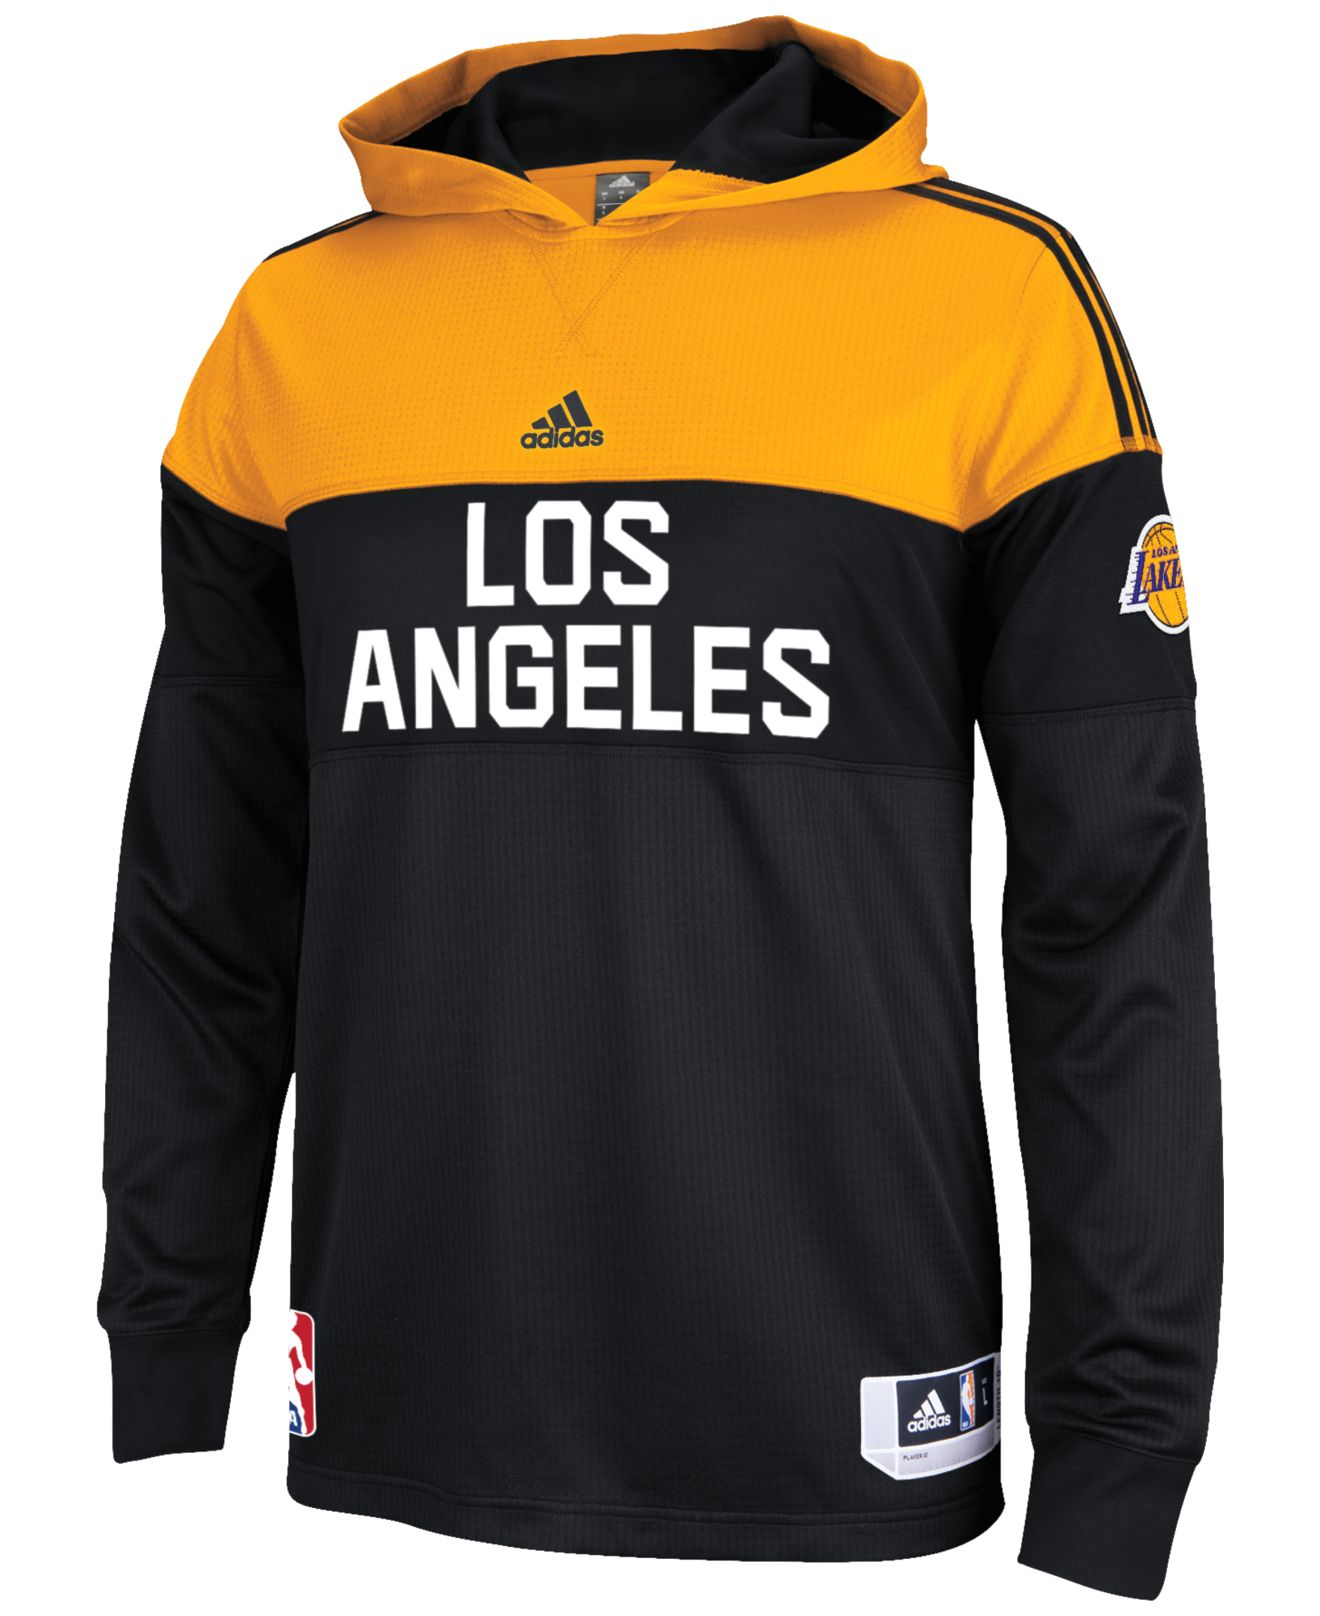 exclusive shoes new arrive for whole family Men'S Long-Sleeve Los Angeles Lakers On Court Shooter Shirt